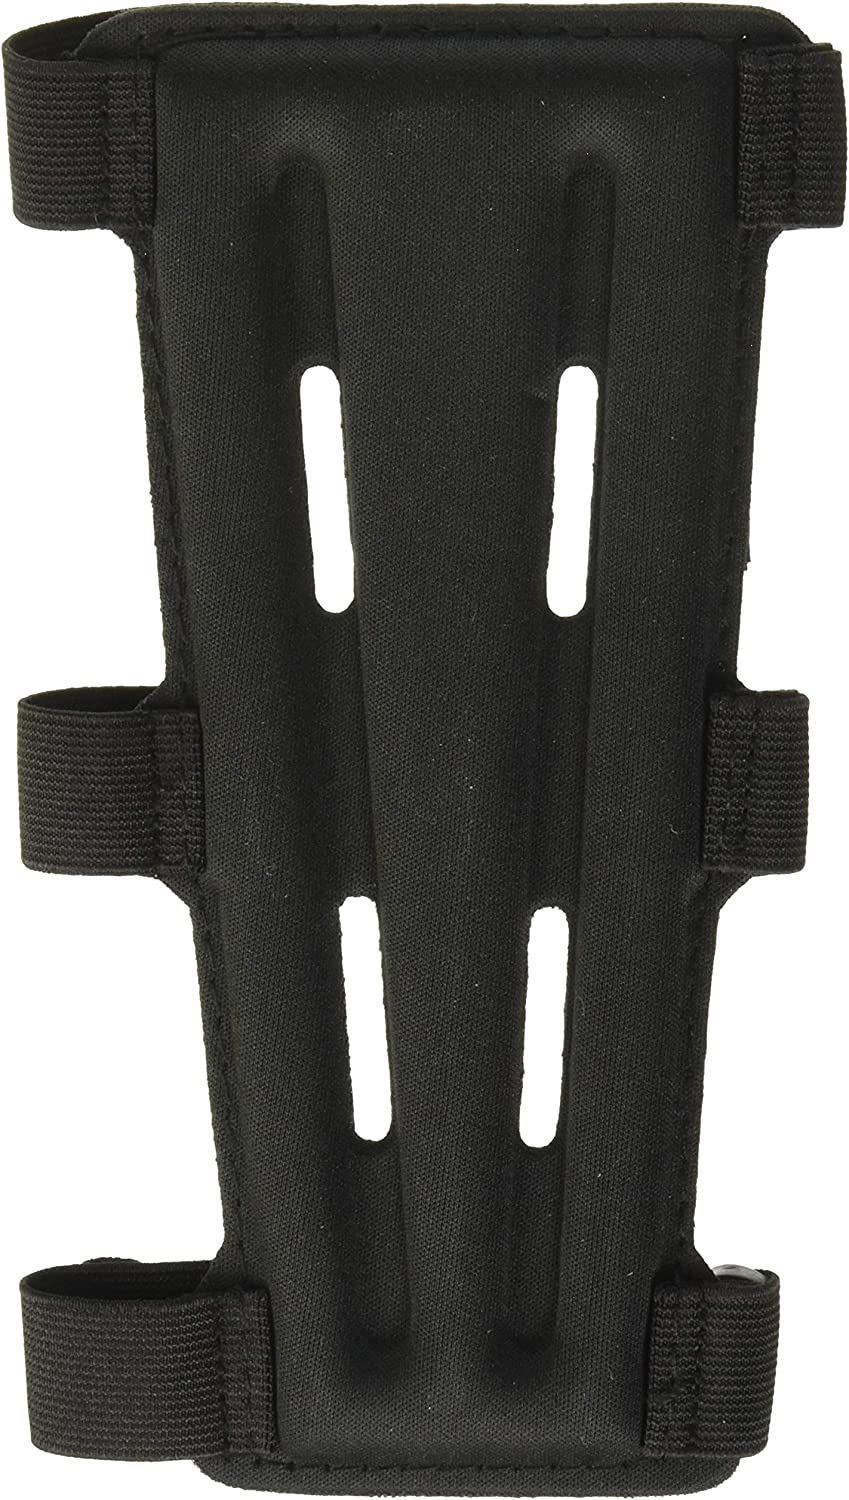 """SAS 8"""" Armguard Archery Bow Range with 3-Strap Buckles (Black) : Sports & Outdoors"""